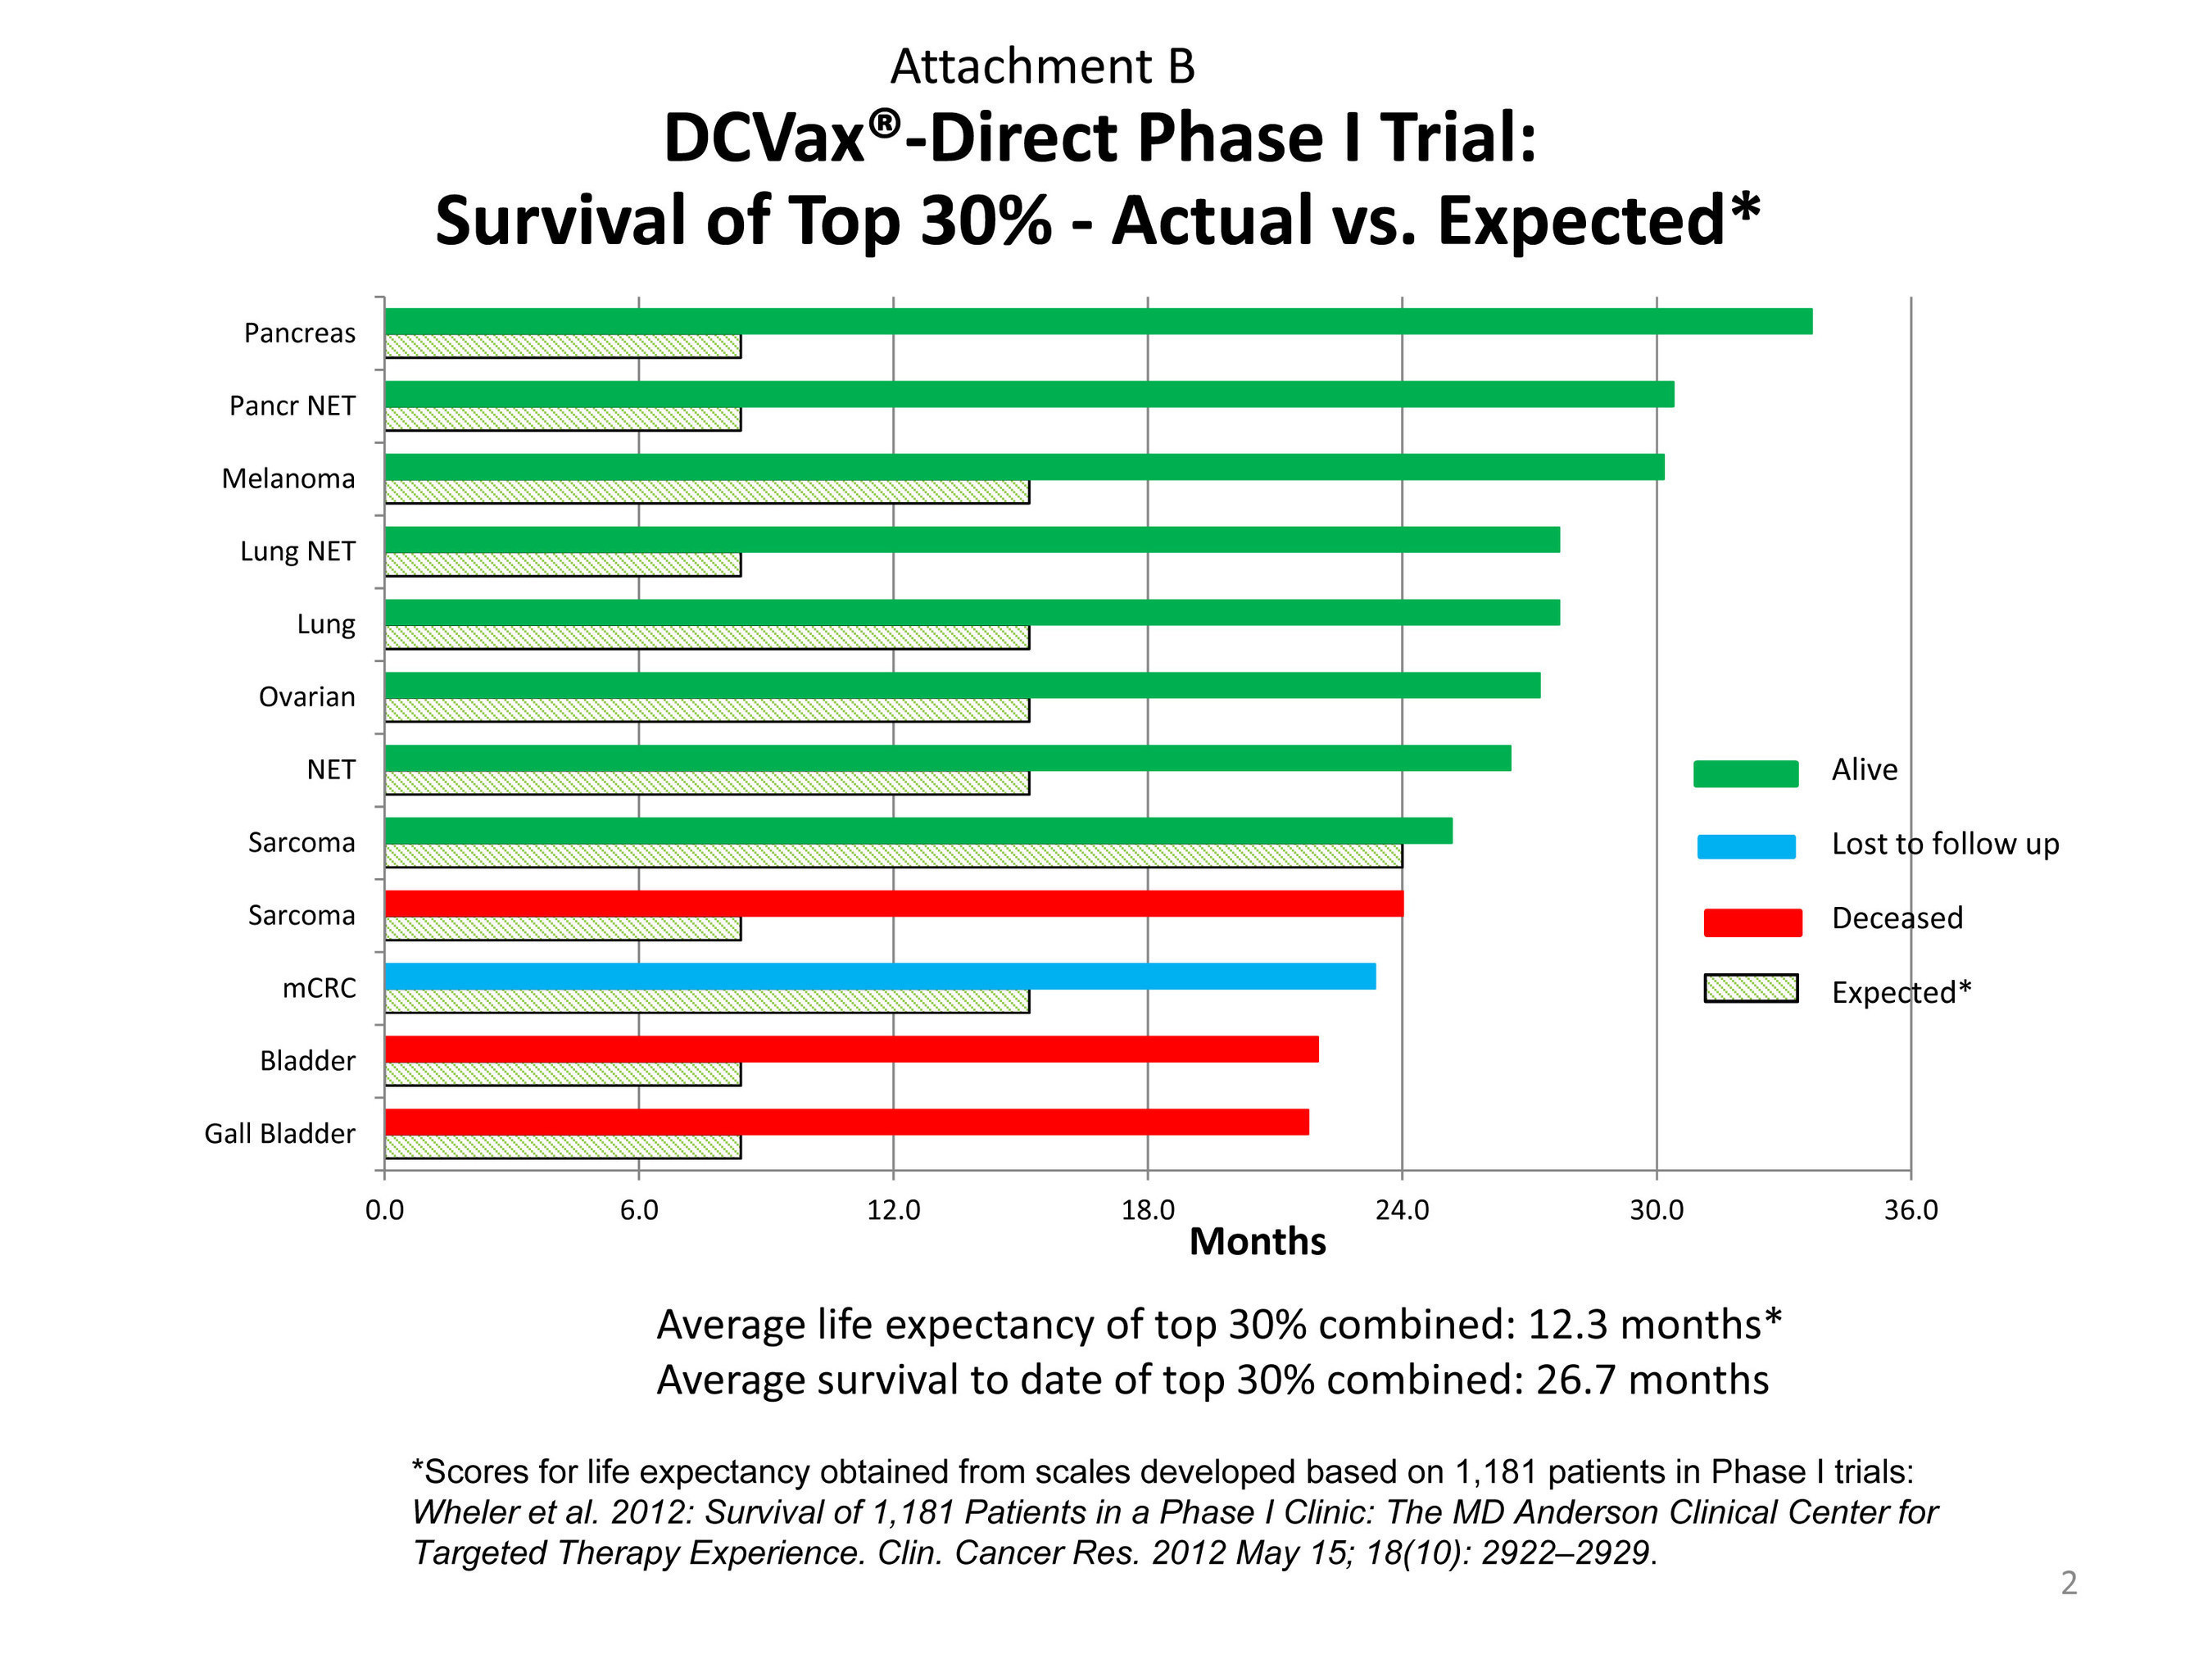 NW Bio Presents Updated Data From DCVax®-Direct Phase I Trial At 5th